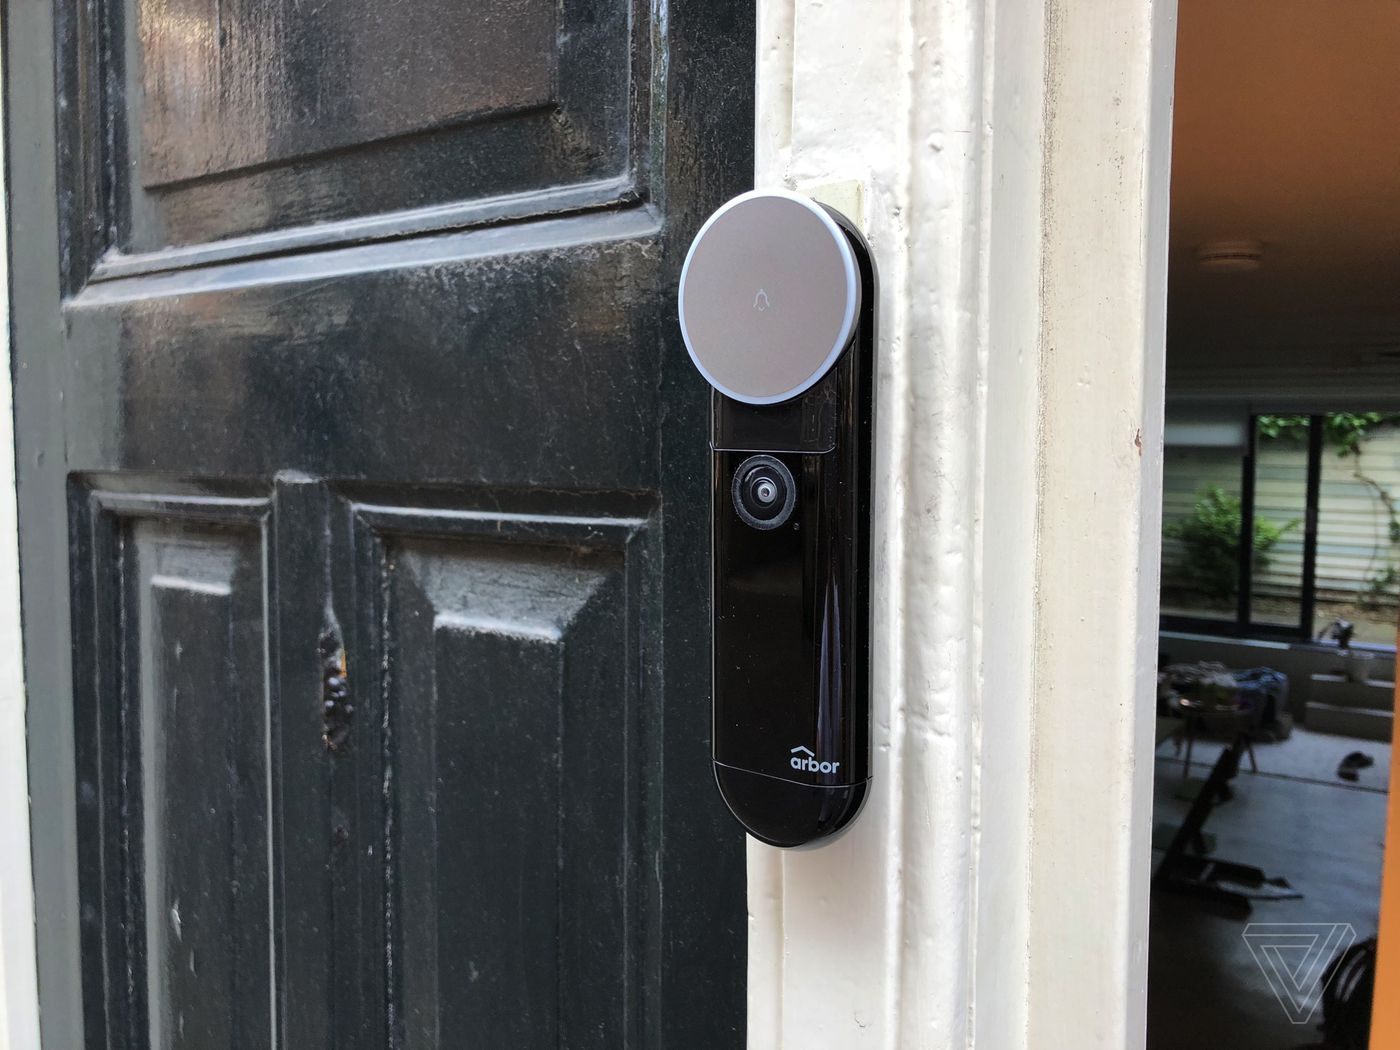 The Arbor Video Doorbell Offers More Than Ring For Less Verge Door Opening Alarm Alert Circuit